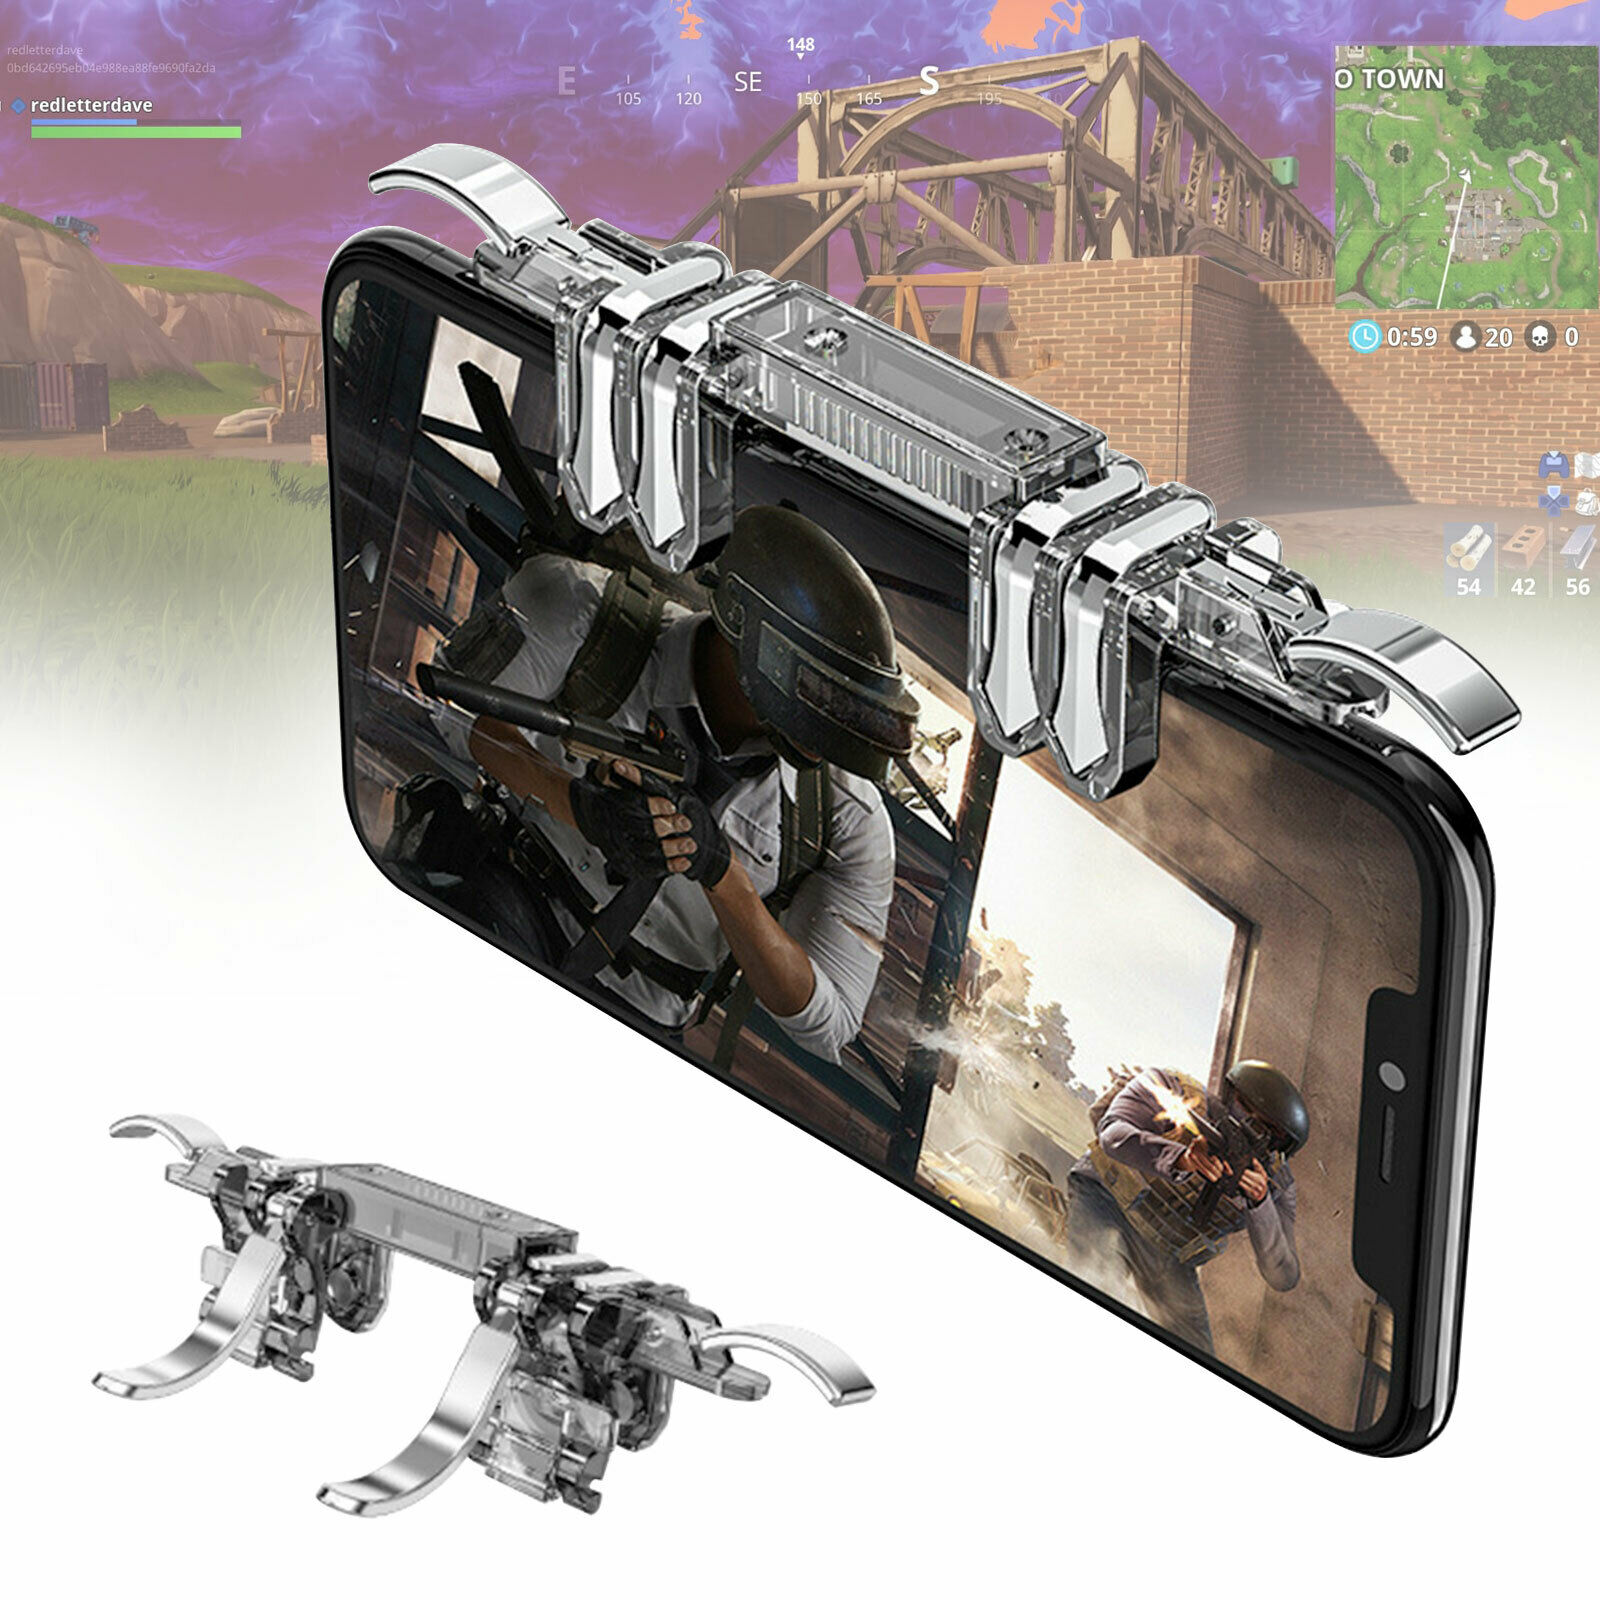 6 Finger Controller Trigger Game Fire Button Handle Gamepad for PUBG iOS Android As shown